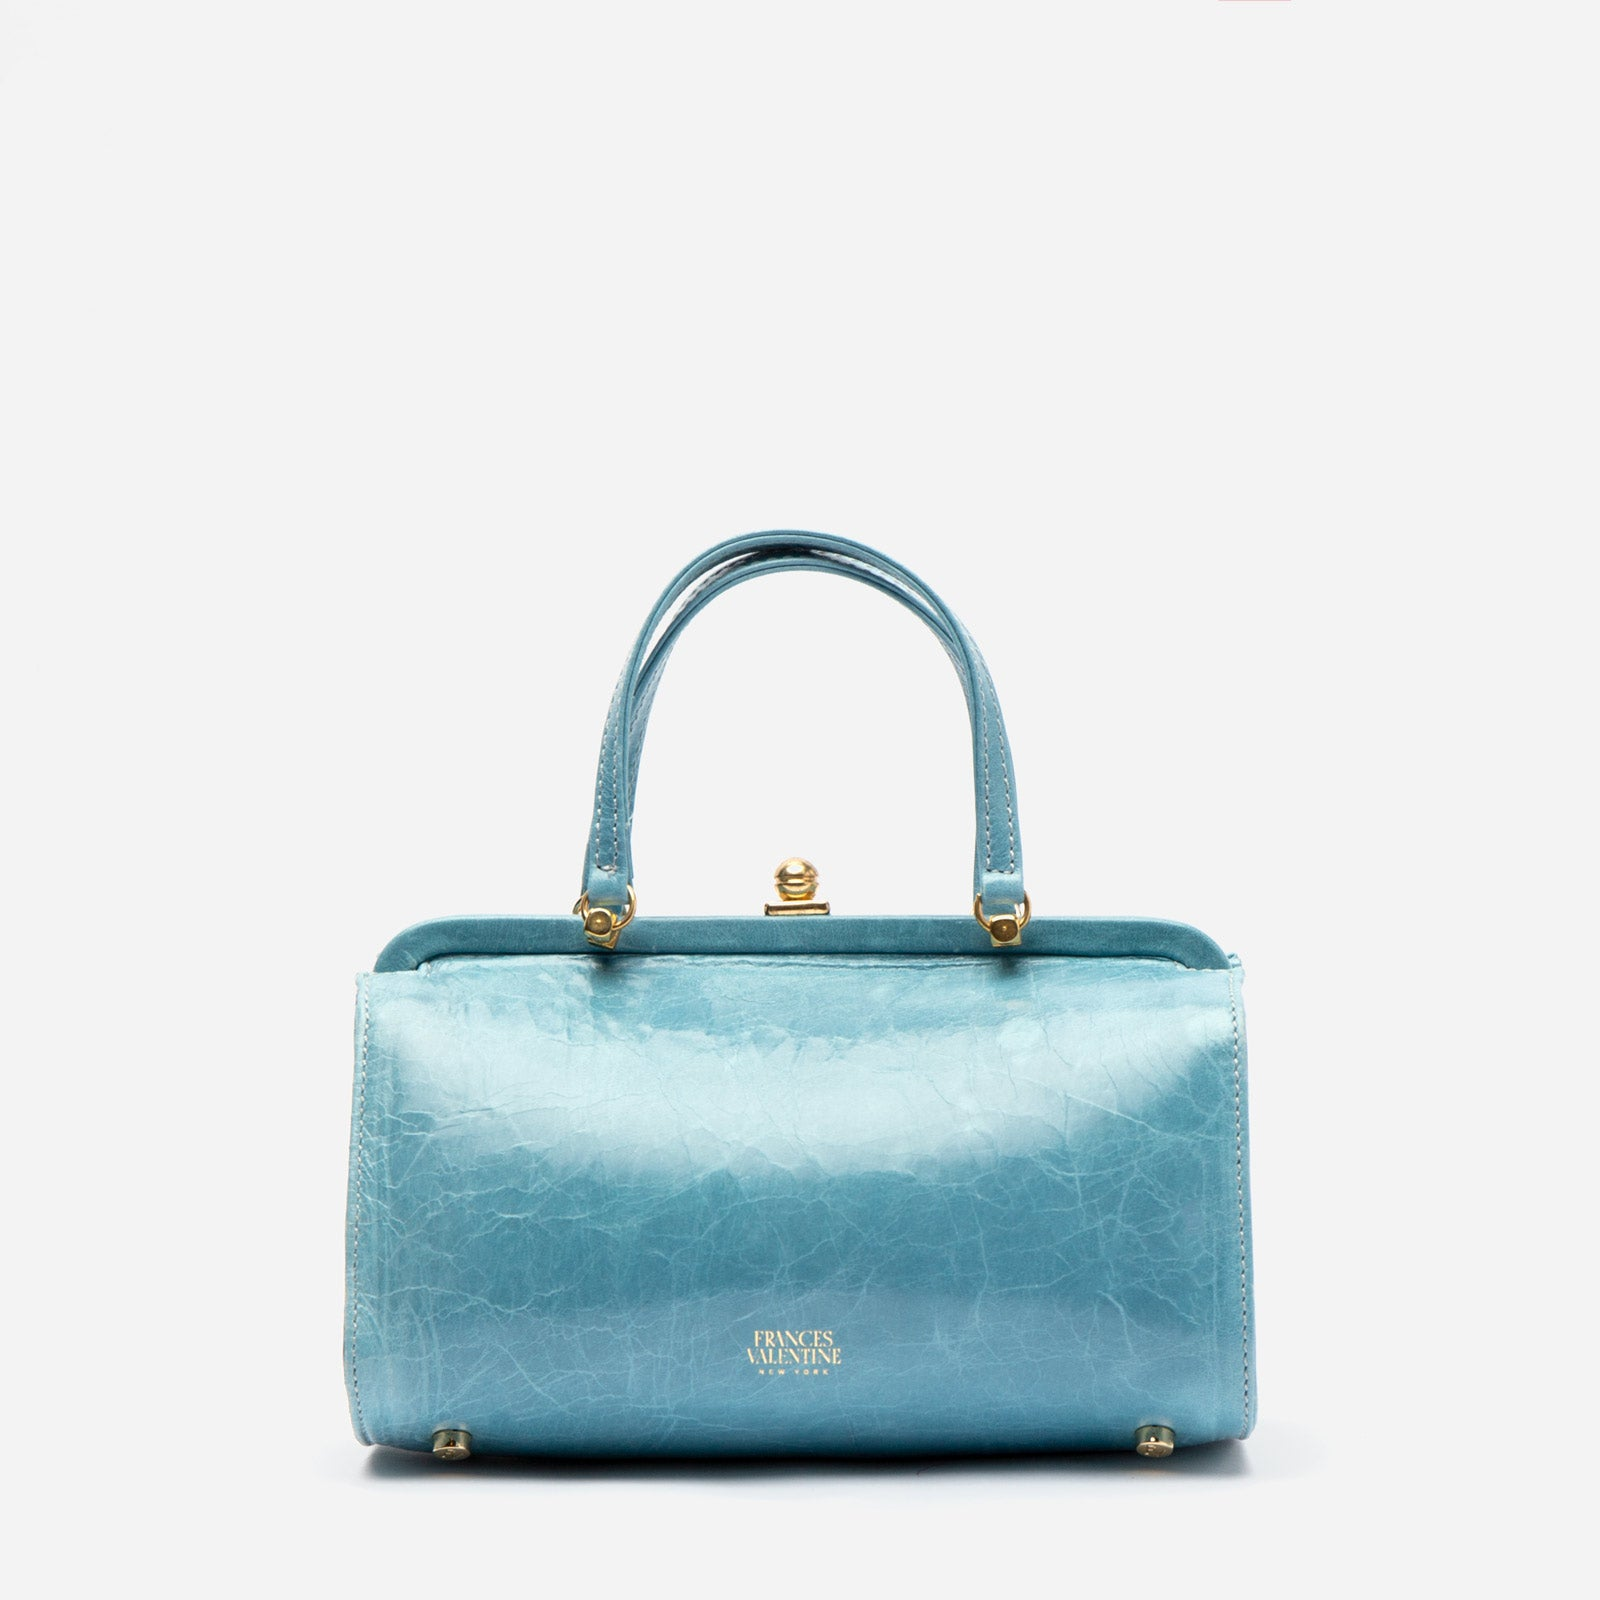 Petite Michelle Naplak Frame Bag Light Blue